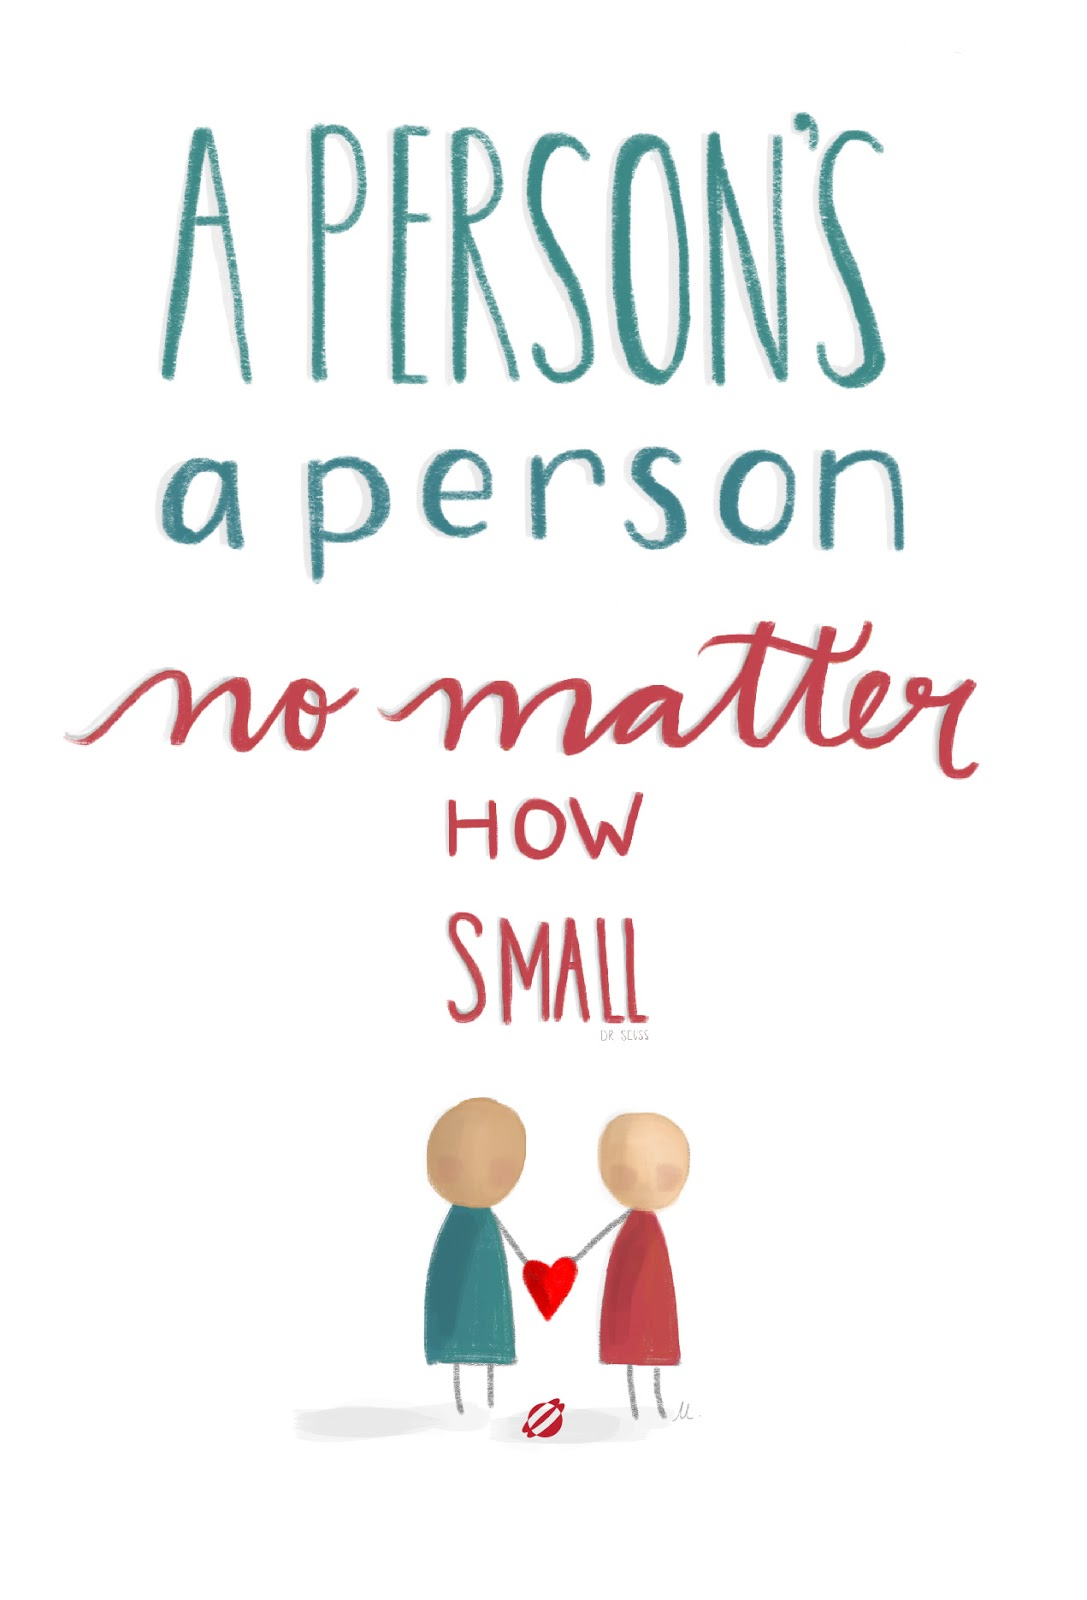 LostBumblebee ©2014 A Person's A Person, No matter how small. MDBN- Hand lettering- Free Printable- Personal Use only